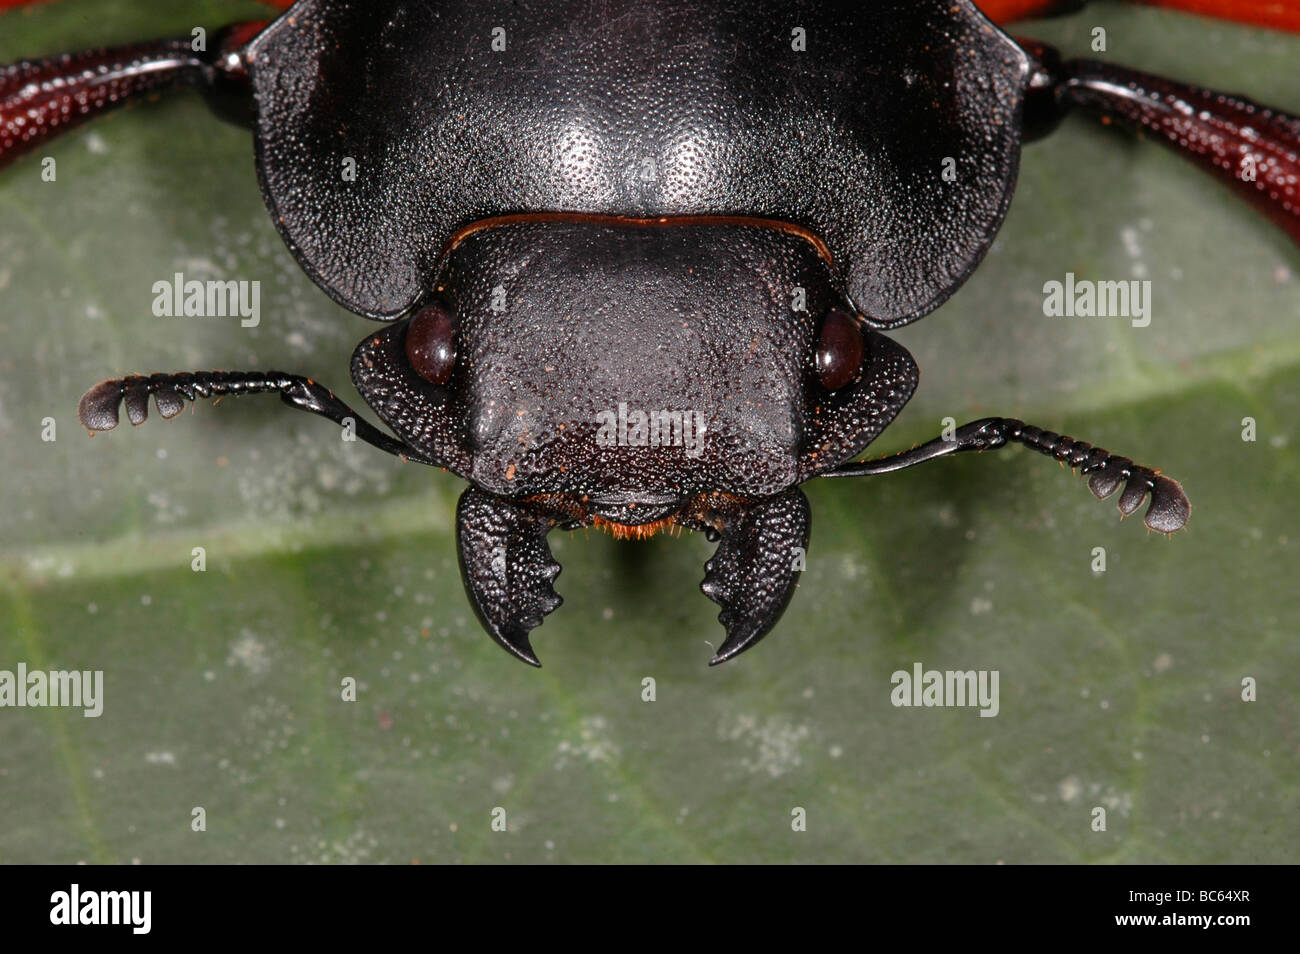 Head of a Beetle with its manibles open - Stock Image